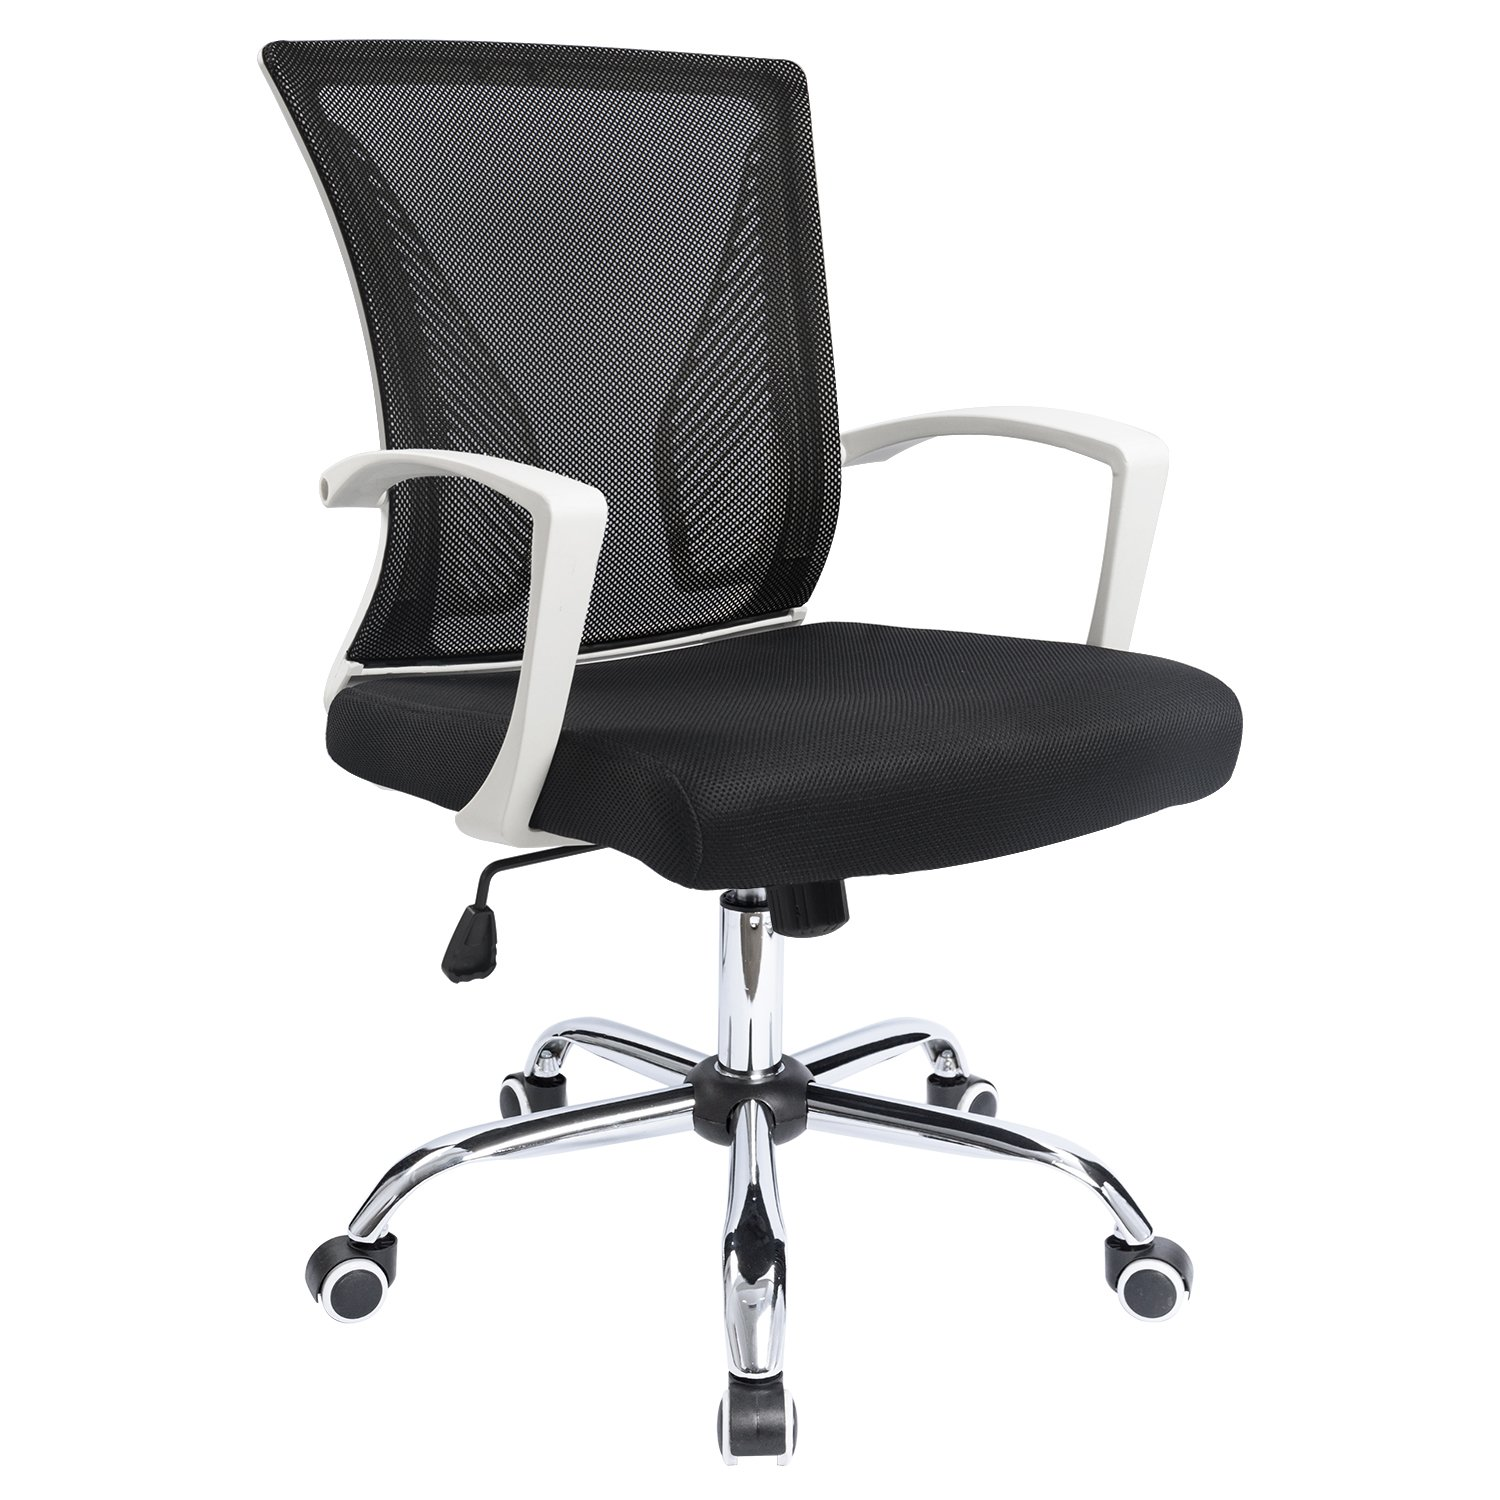 Furmax Office Chair Mid Back Swivel Lumbar Support Desk Chair, Computer Ergonomic Mesh Chair (